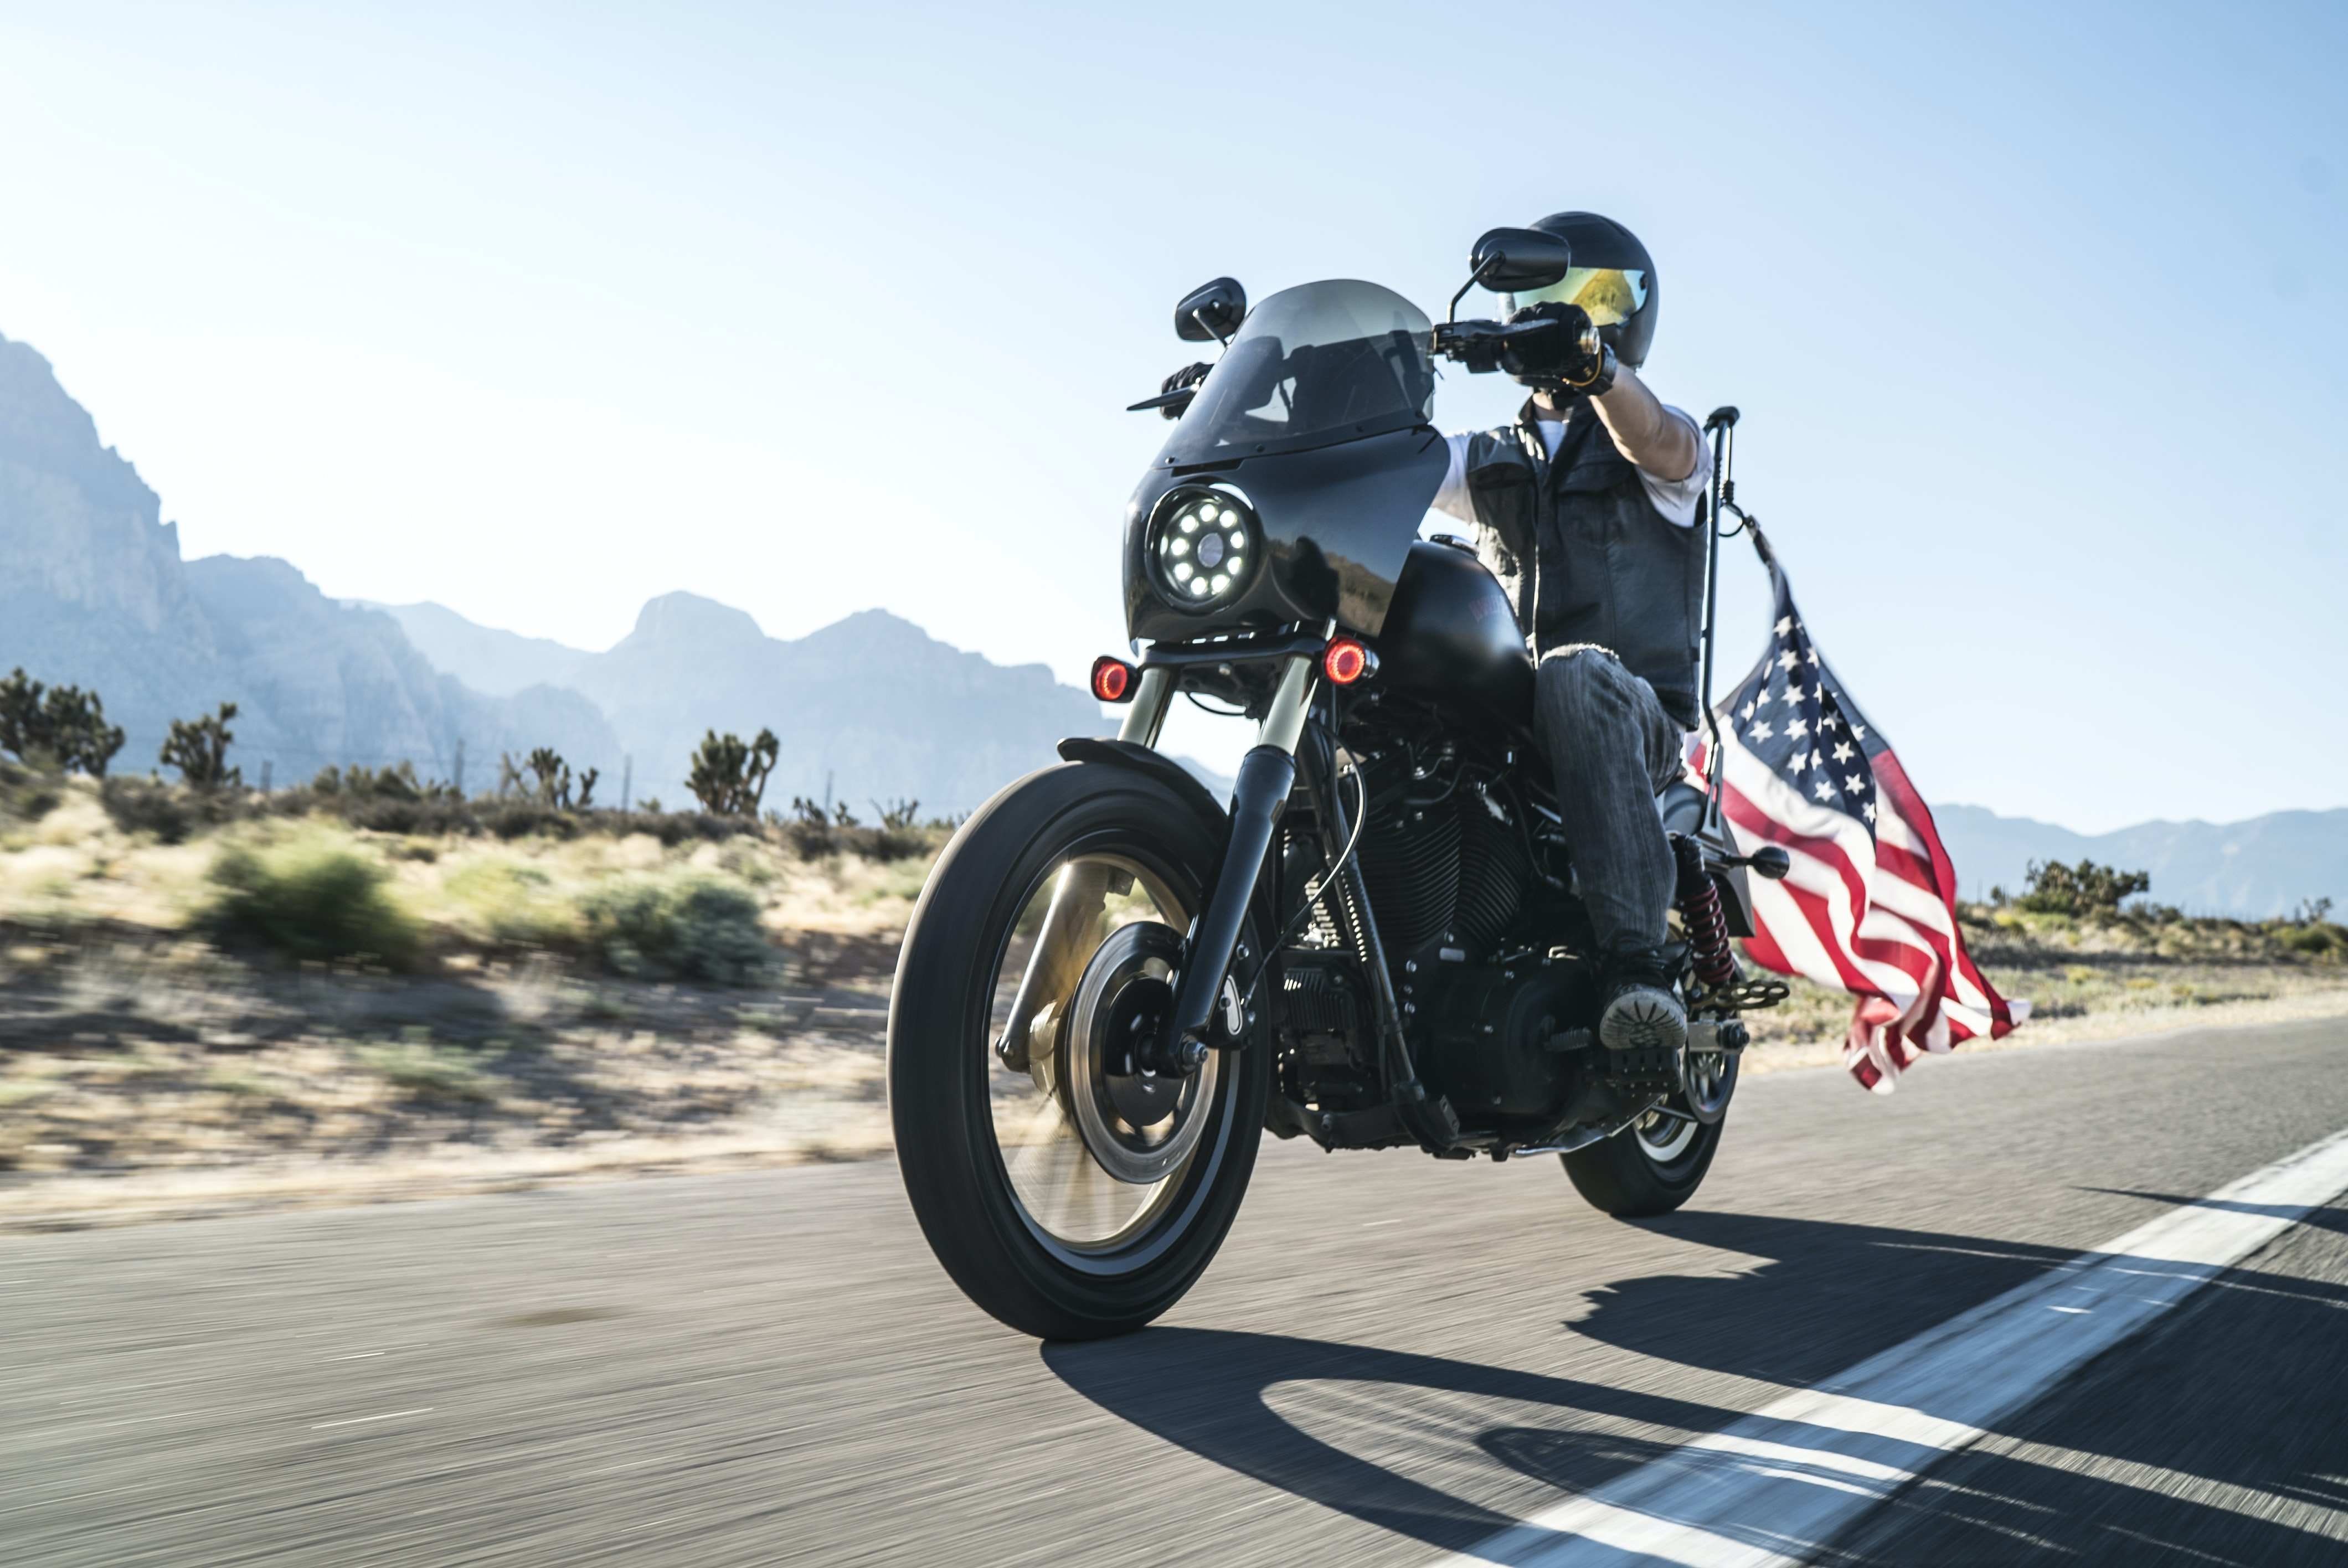 man riding motorcycle with USA flag on back